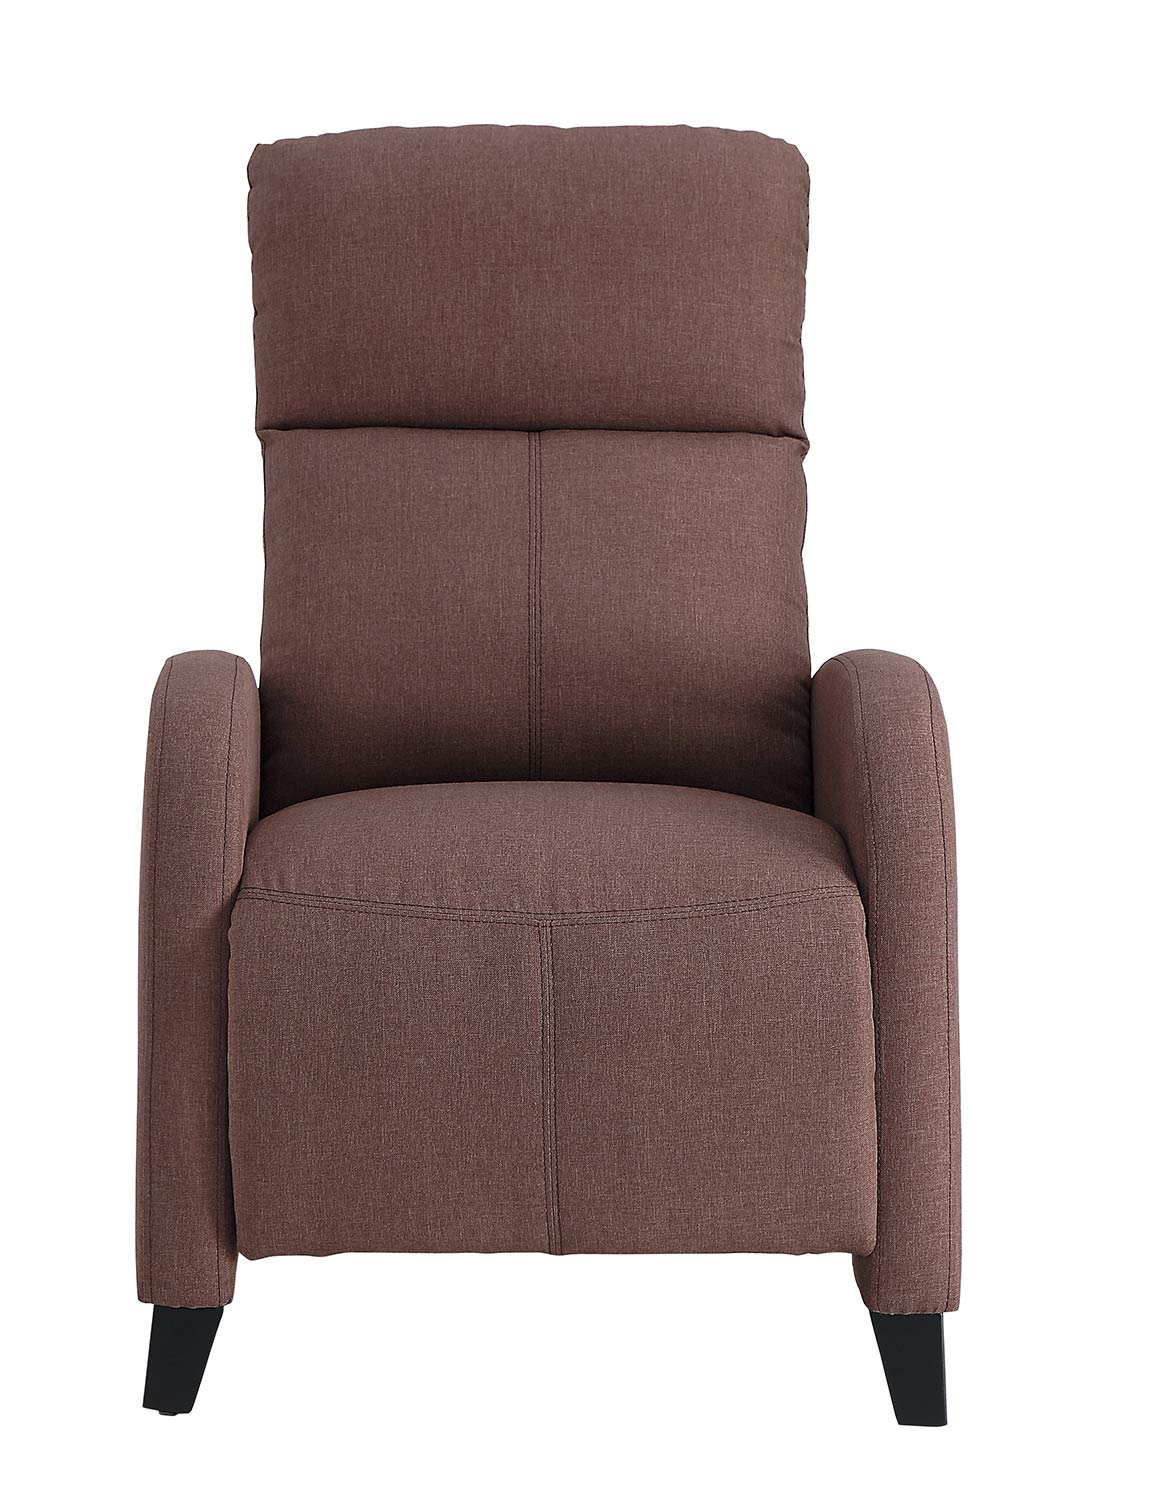 Homelegance Antrim Push Back Reclining Chair - Brown